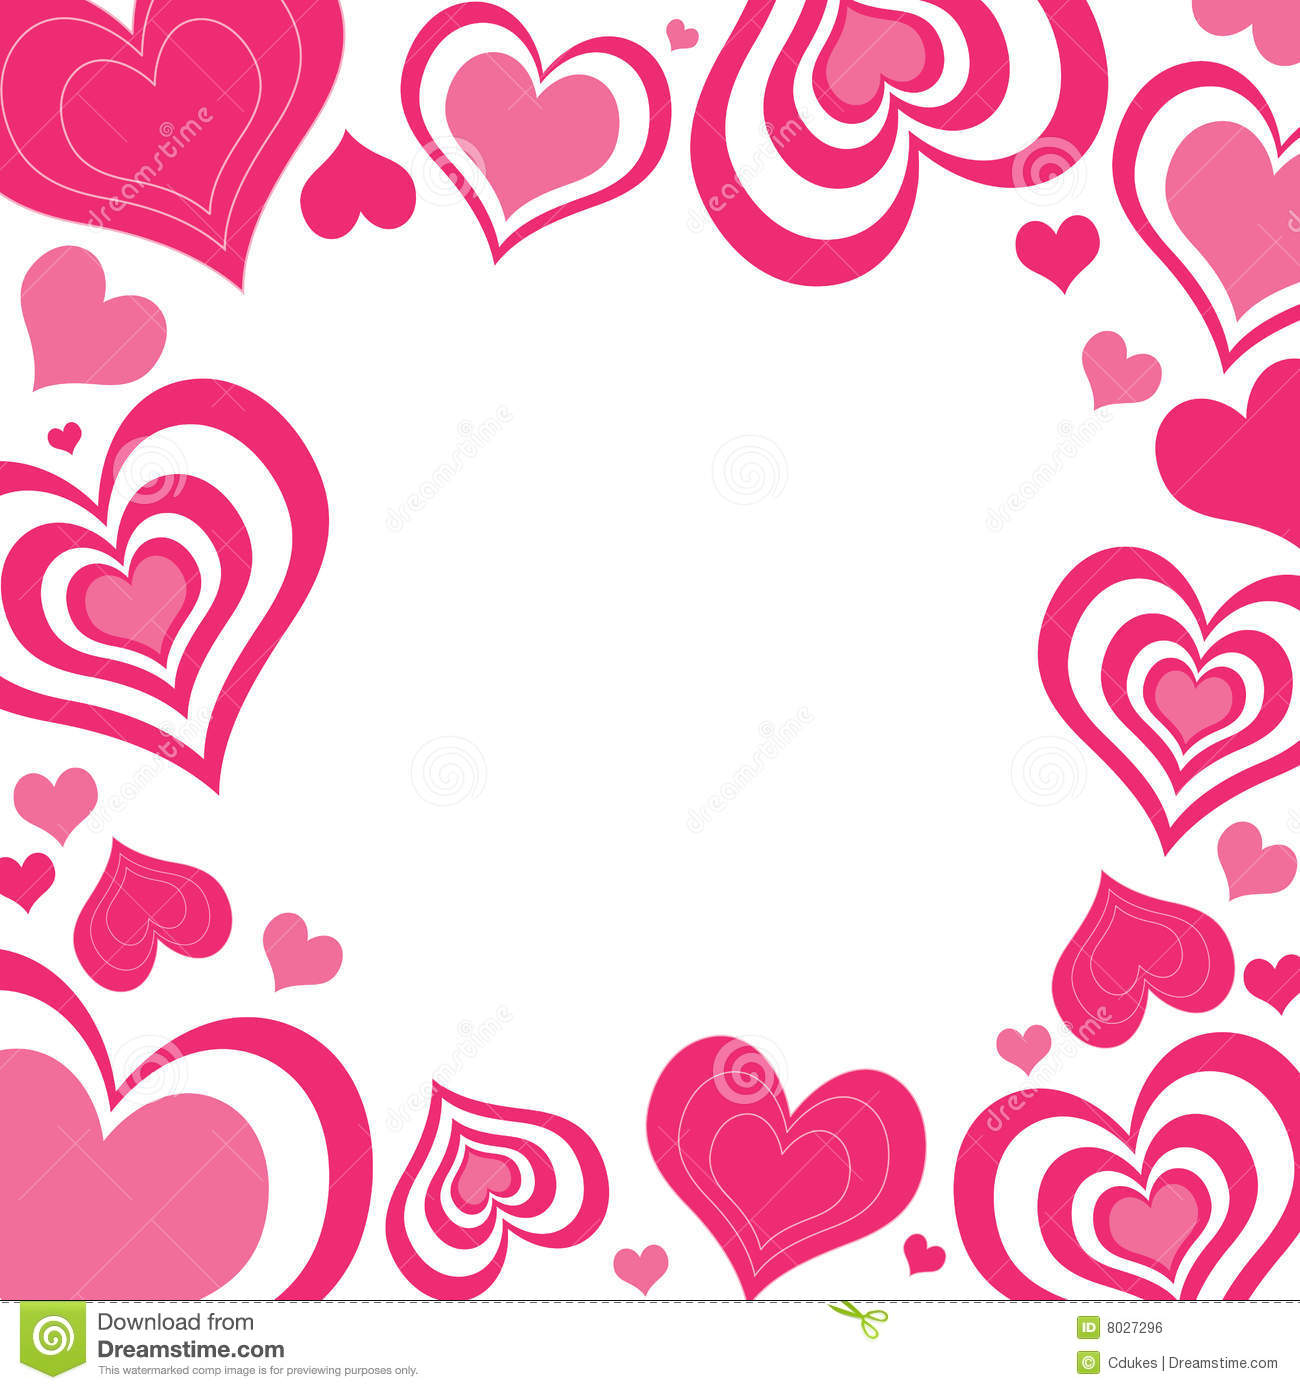 Valentine Clipart For Free At Getdrawings Com Free For Personal